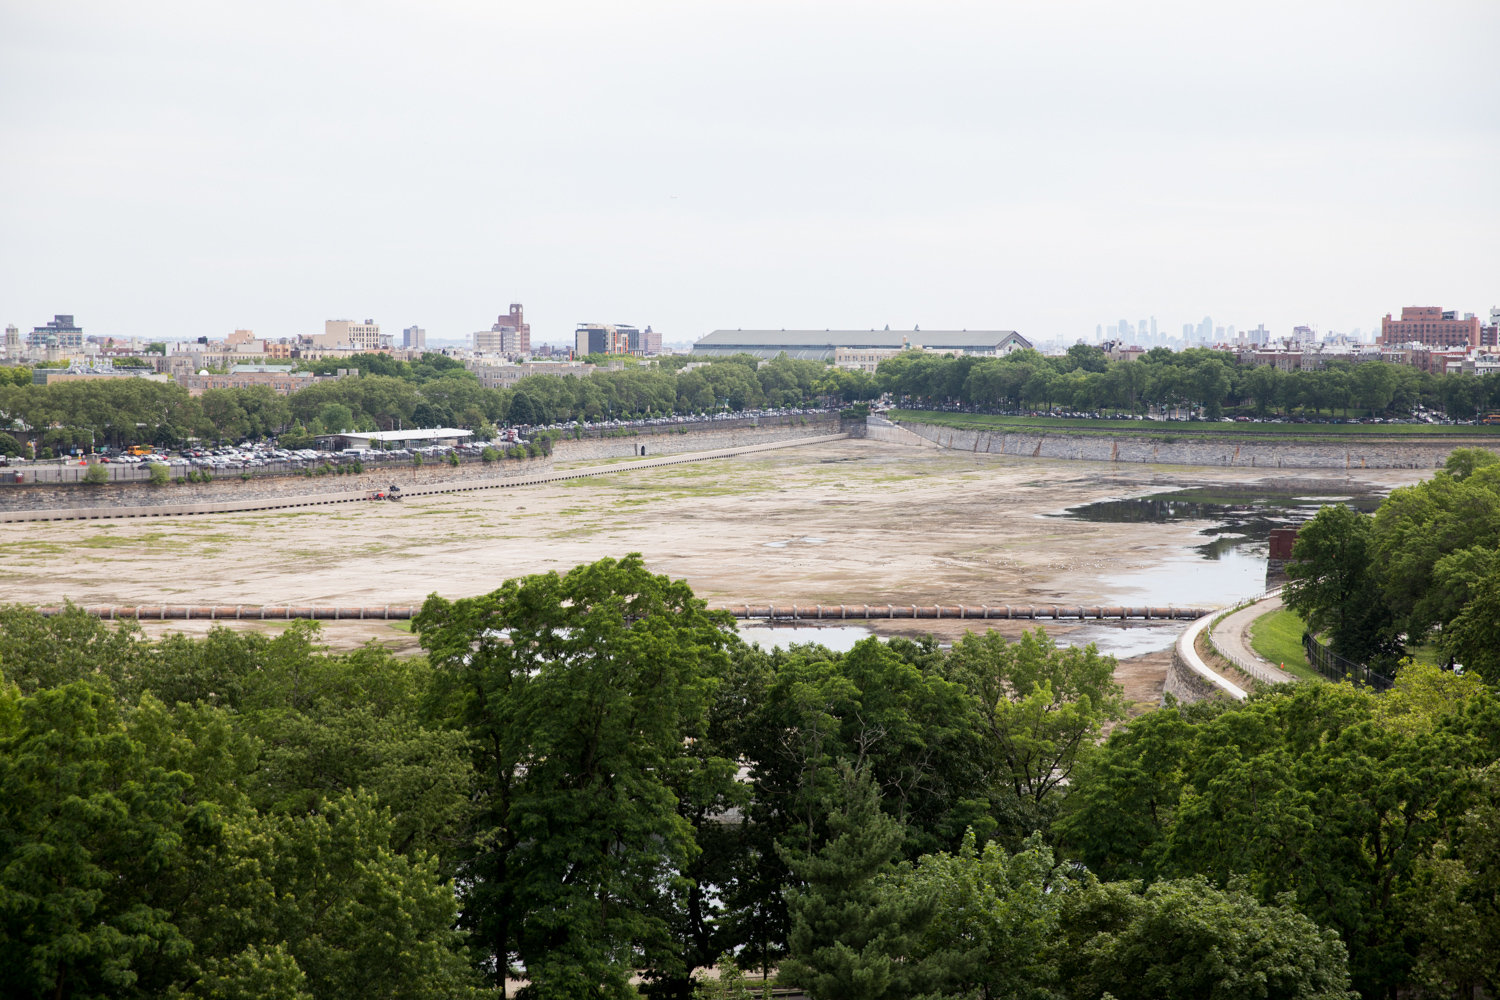 The Jerome Park Reservoir's south basin has seen better days. Currently empty for repair work, the south basin will be full once that work is complete around 2025, according to the city's environmental protection department. A full south basin means the north basin will be permanently empty as a failsafe, earning the ire of its neighbors.